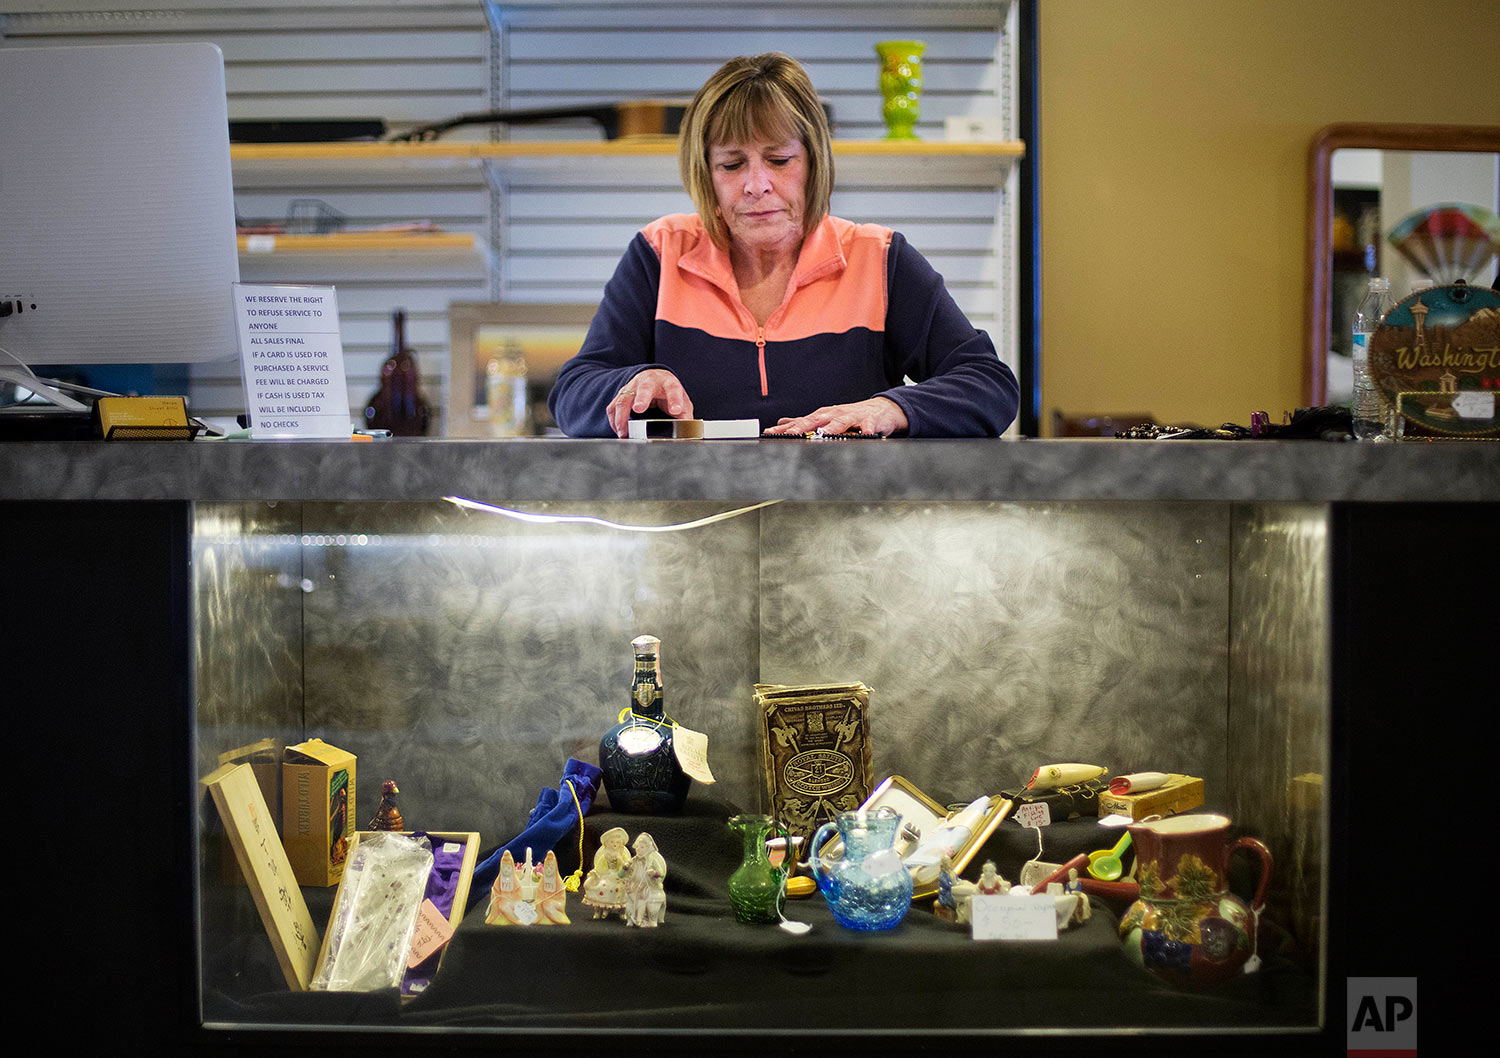 """Stacie Blodgett, who voted for Donald Trump, works in her antique and pawn shop in Aberdeen, Wash., Tuesday, June 13, 2017. """"Has he done anything good yet?"""" she asks. """"Has he?"""" She hopes Trump understands the stakes in places like this, with little room left for error from Washington, D.C. There, he is tweeting insults about senators and CNN. Here, her neighbors have been reduced to living in cars. (AP Photo/David Goldman)"""